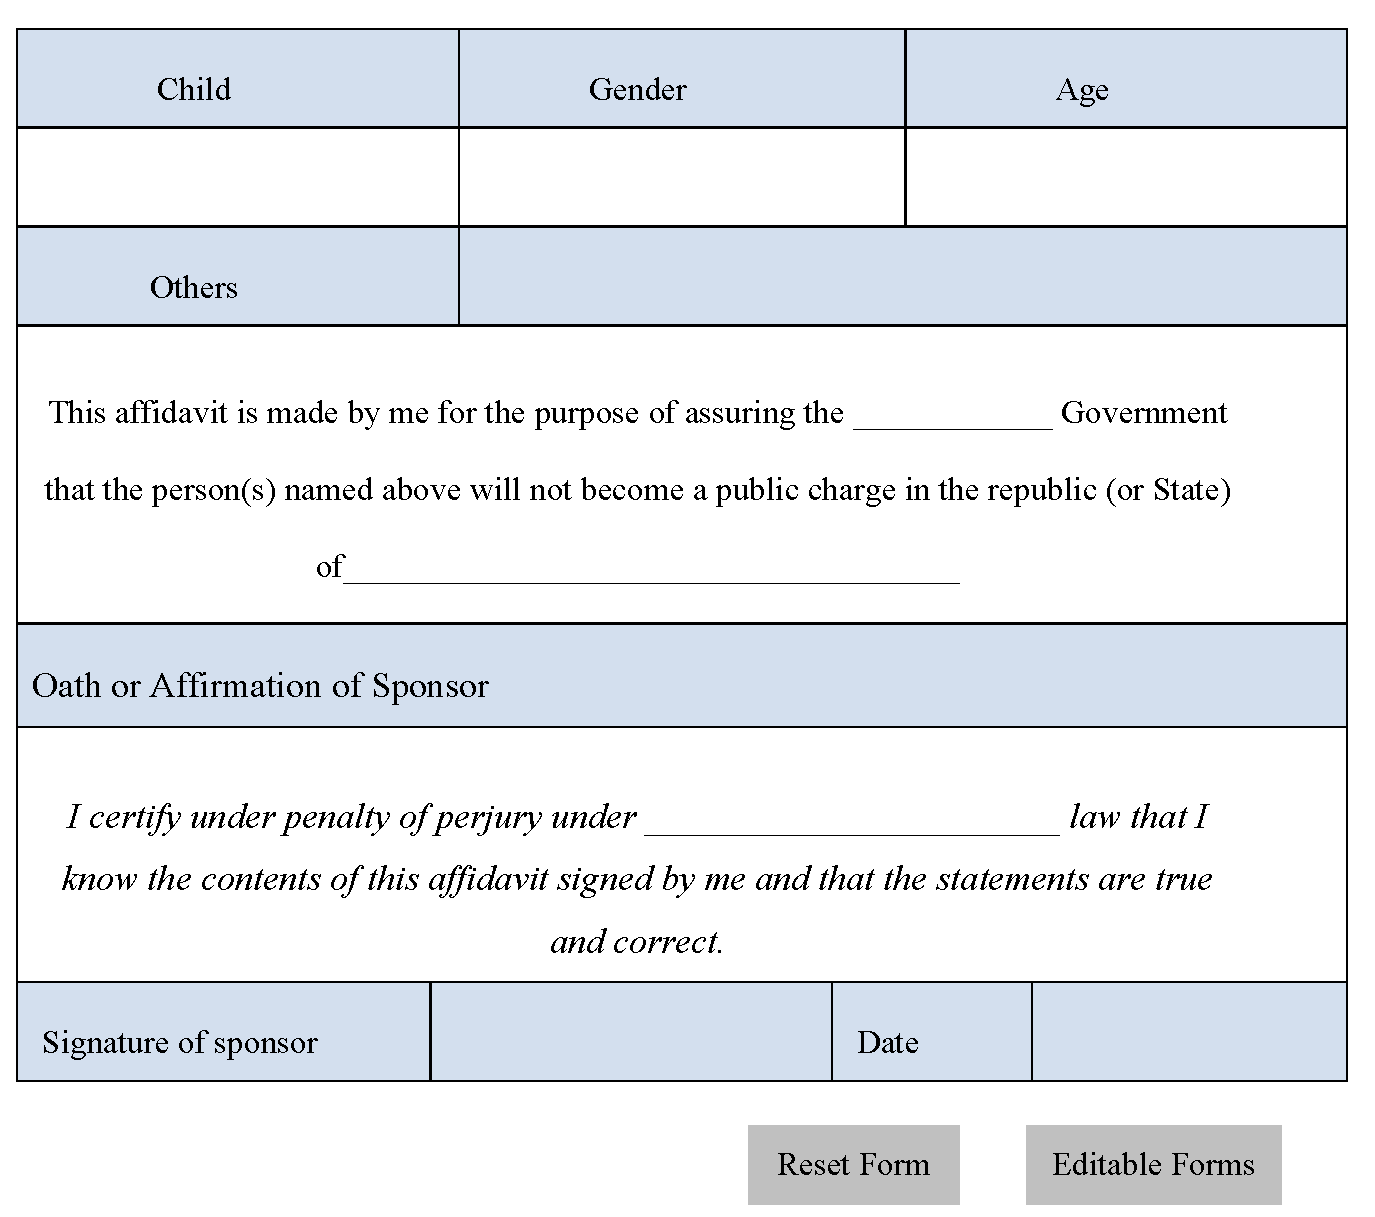 Affidavit of Support Form – Affidavit of Support Form